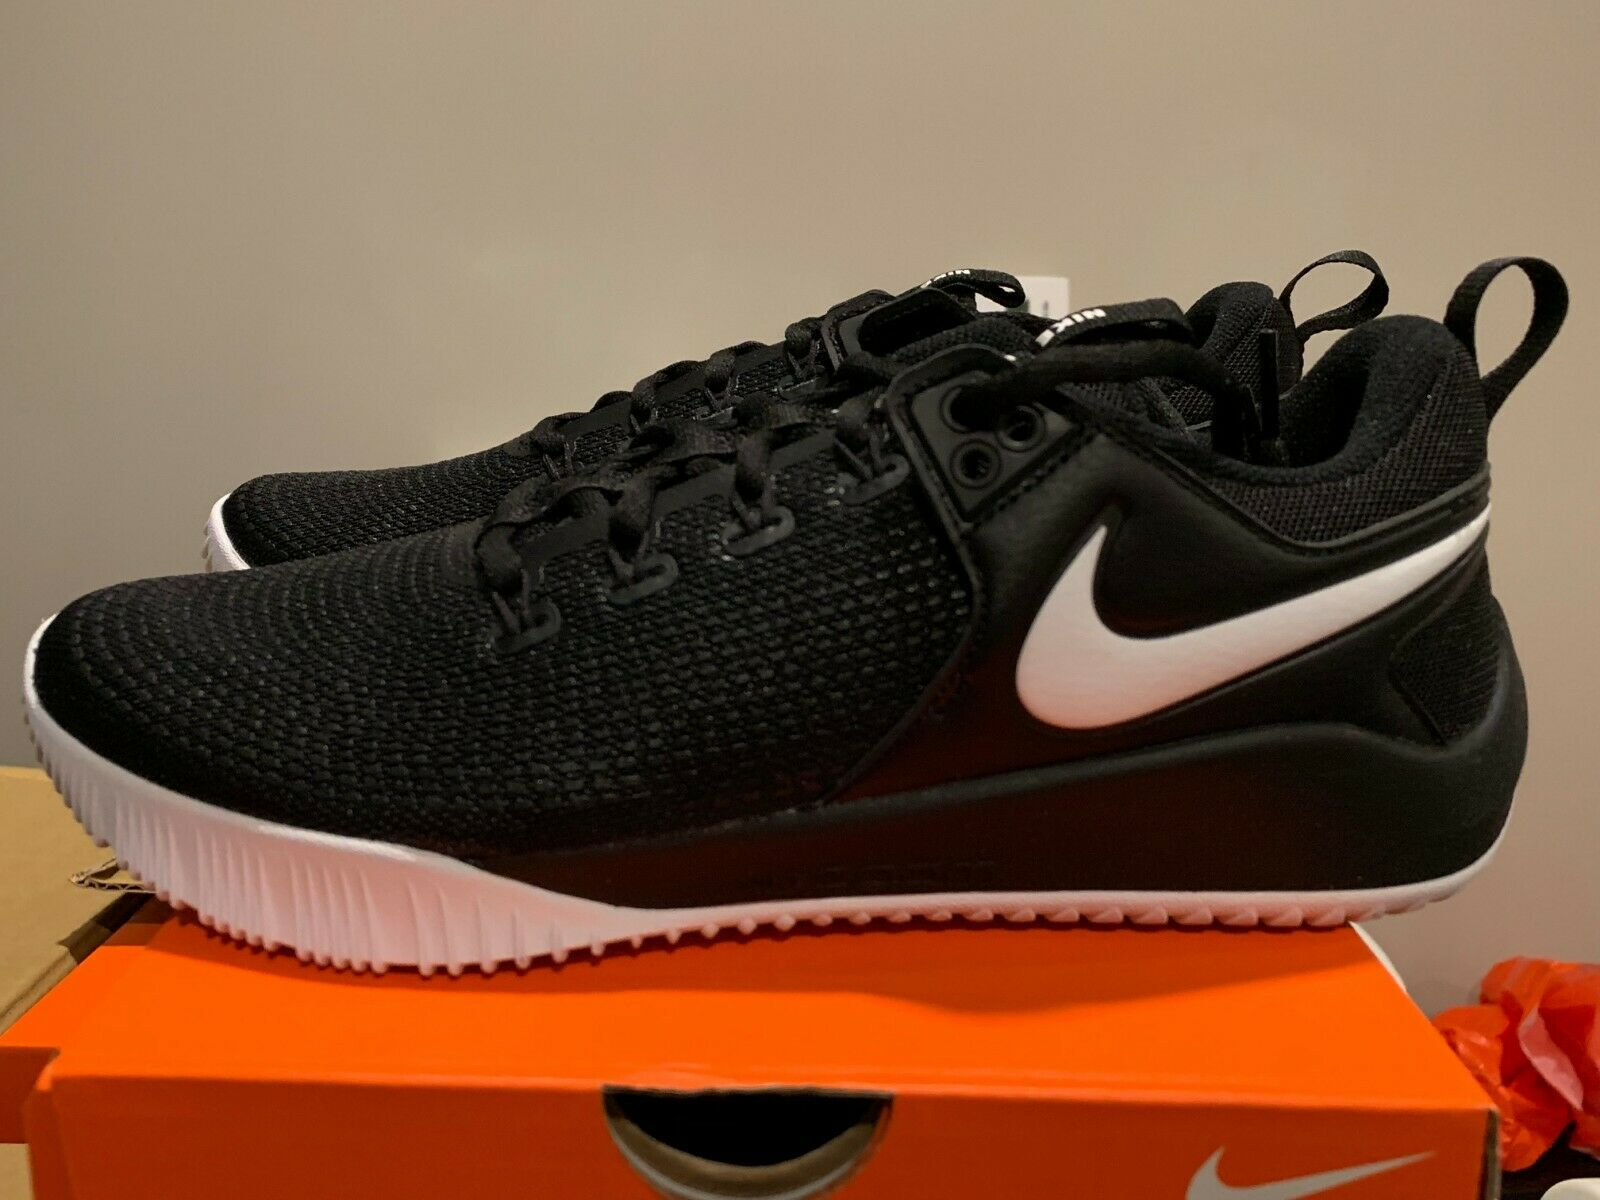 Nike Women's Zoom Hyperace 2 Volleyball   Court shoes Black-White - New In Box